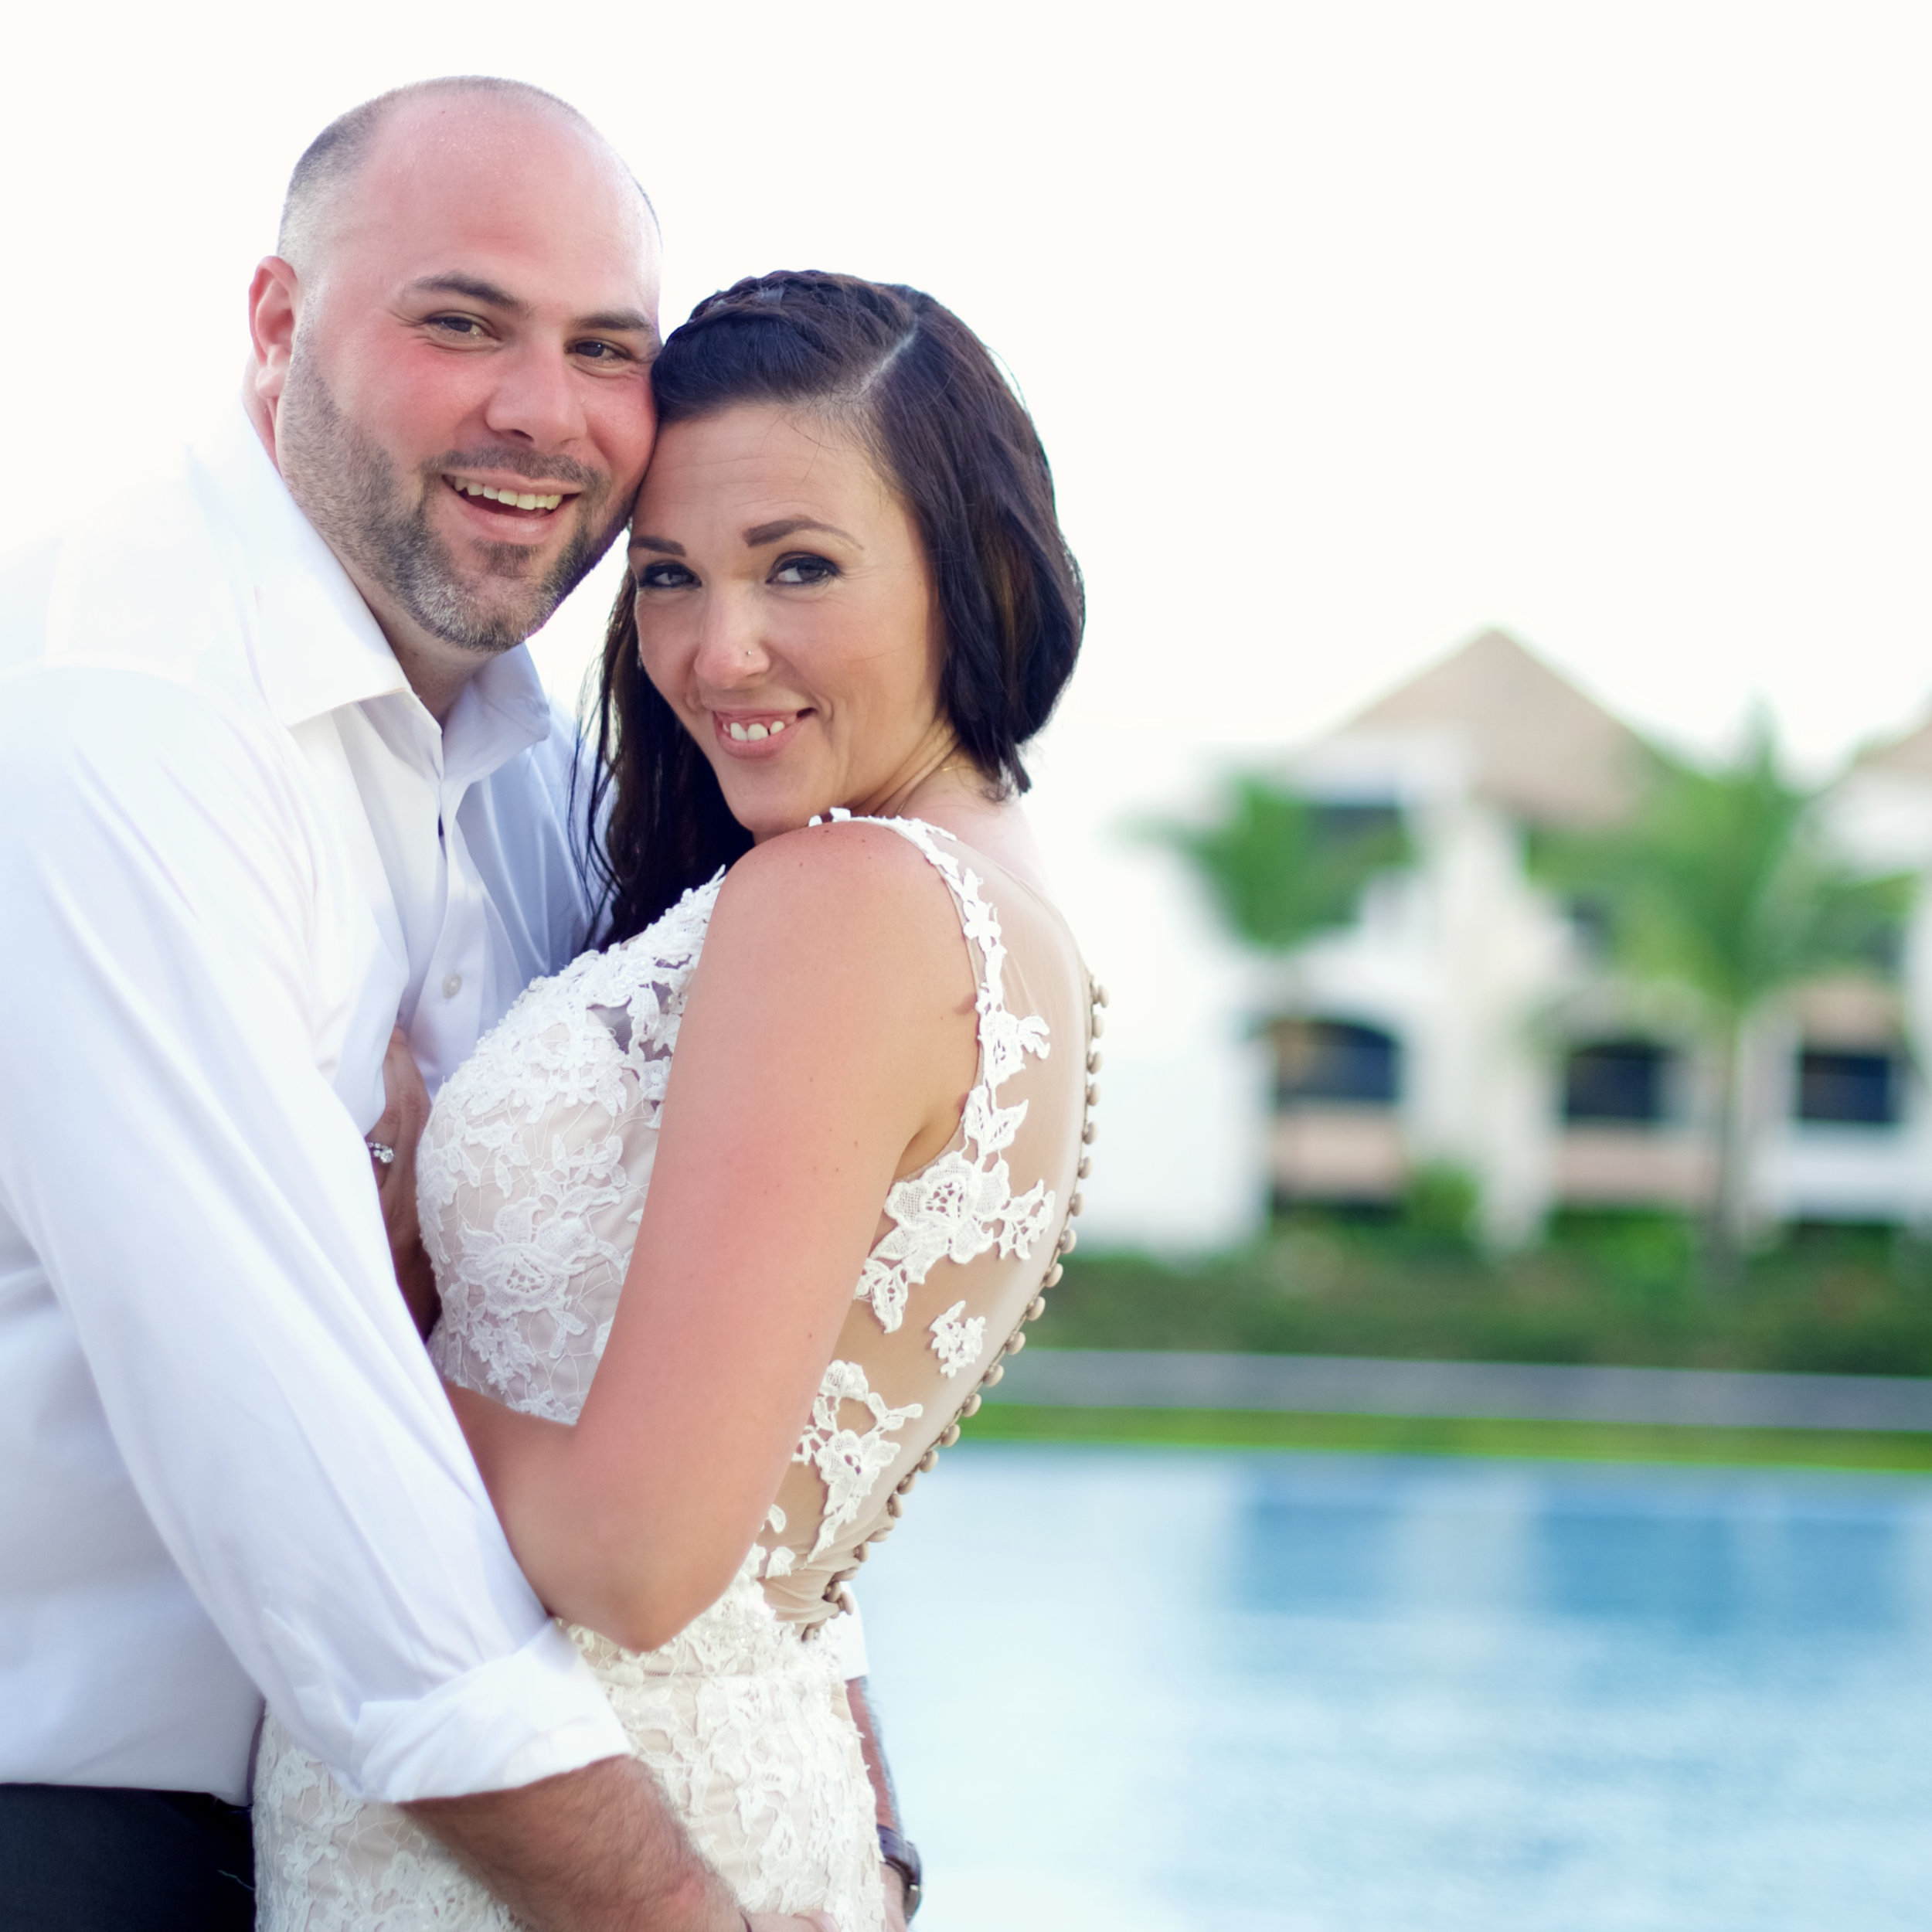 Hard Rock Hotel & Casino Wedding in Dominican Republic 6.jpg